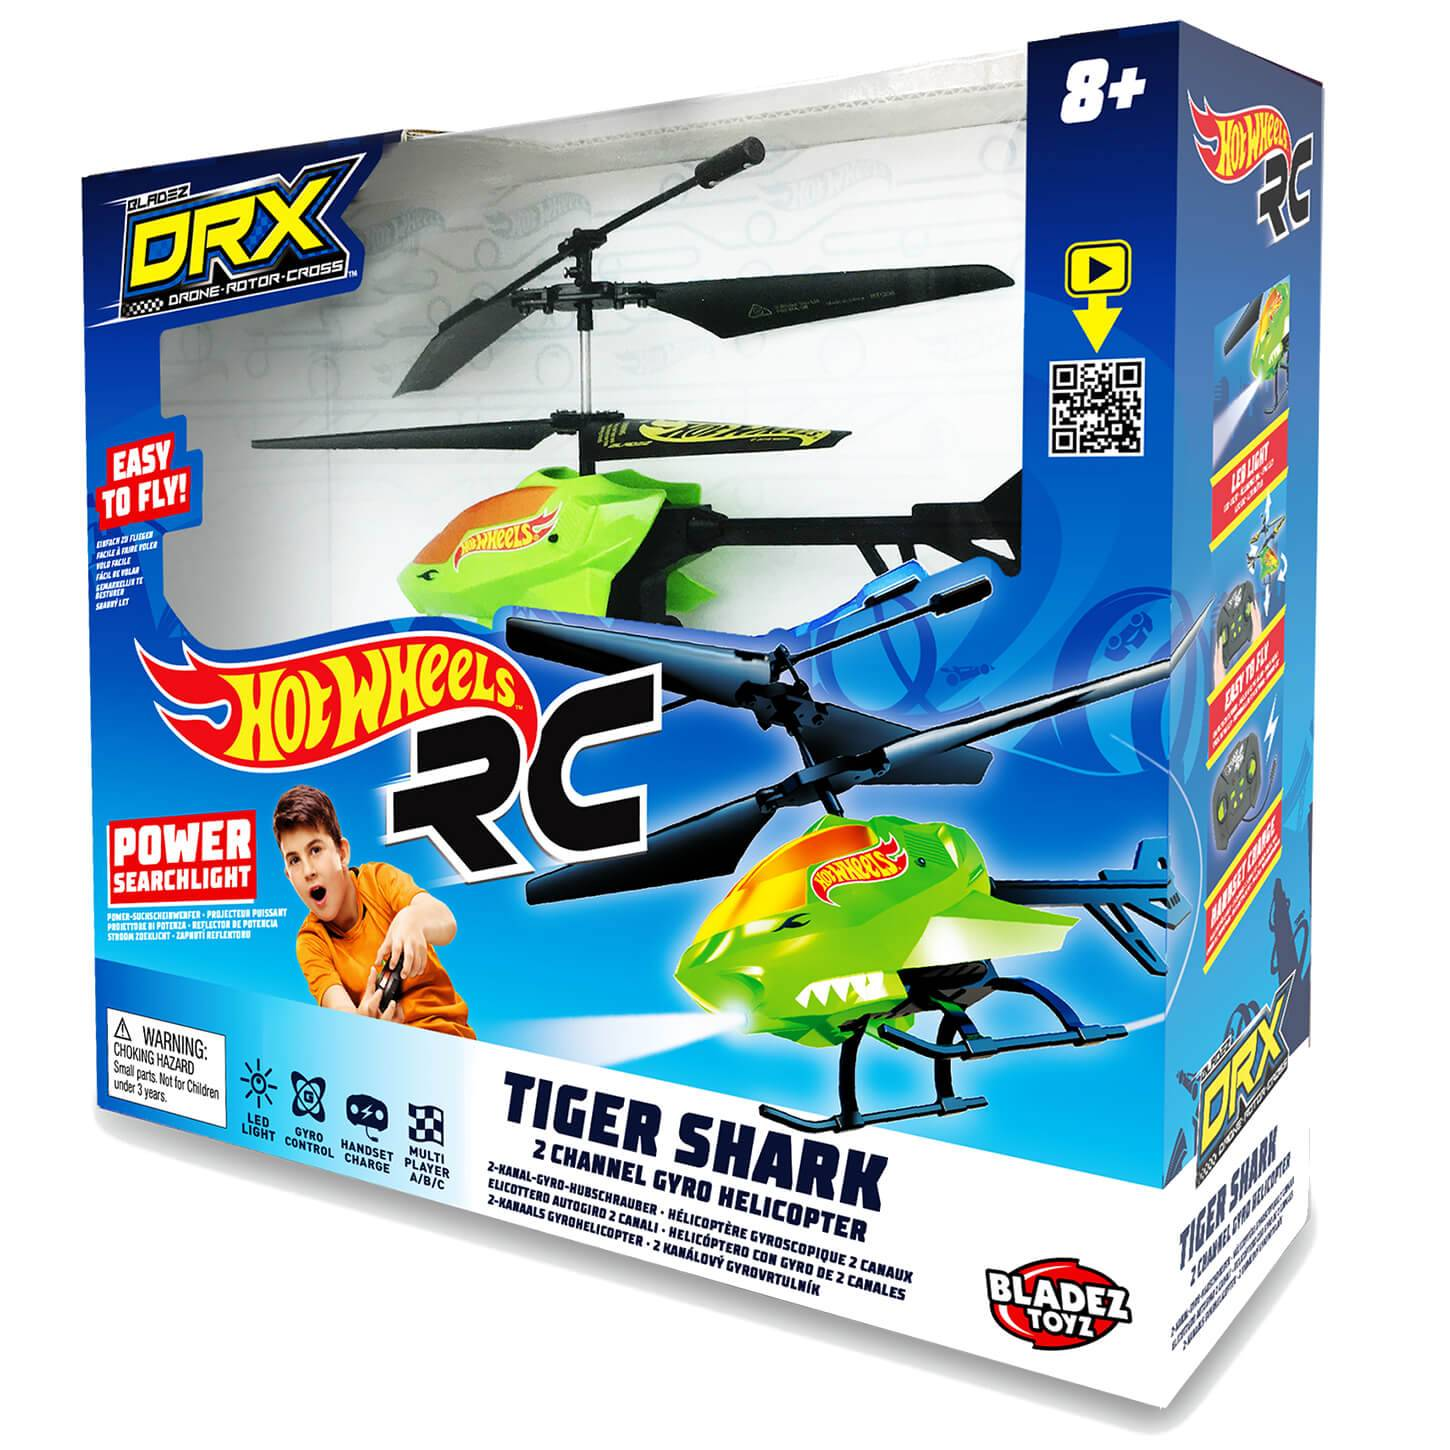 Bladez Toyz Hot Wheels DRX Tiger Shark Helicopter